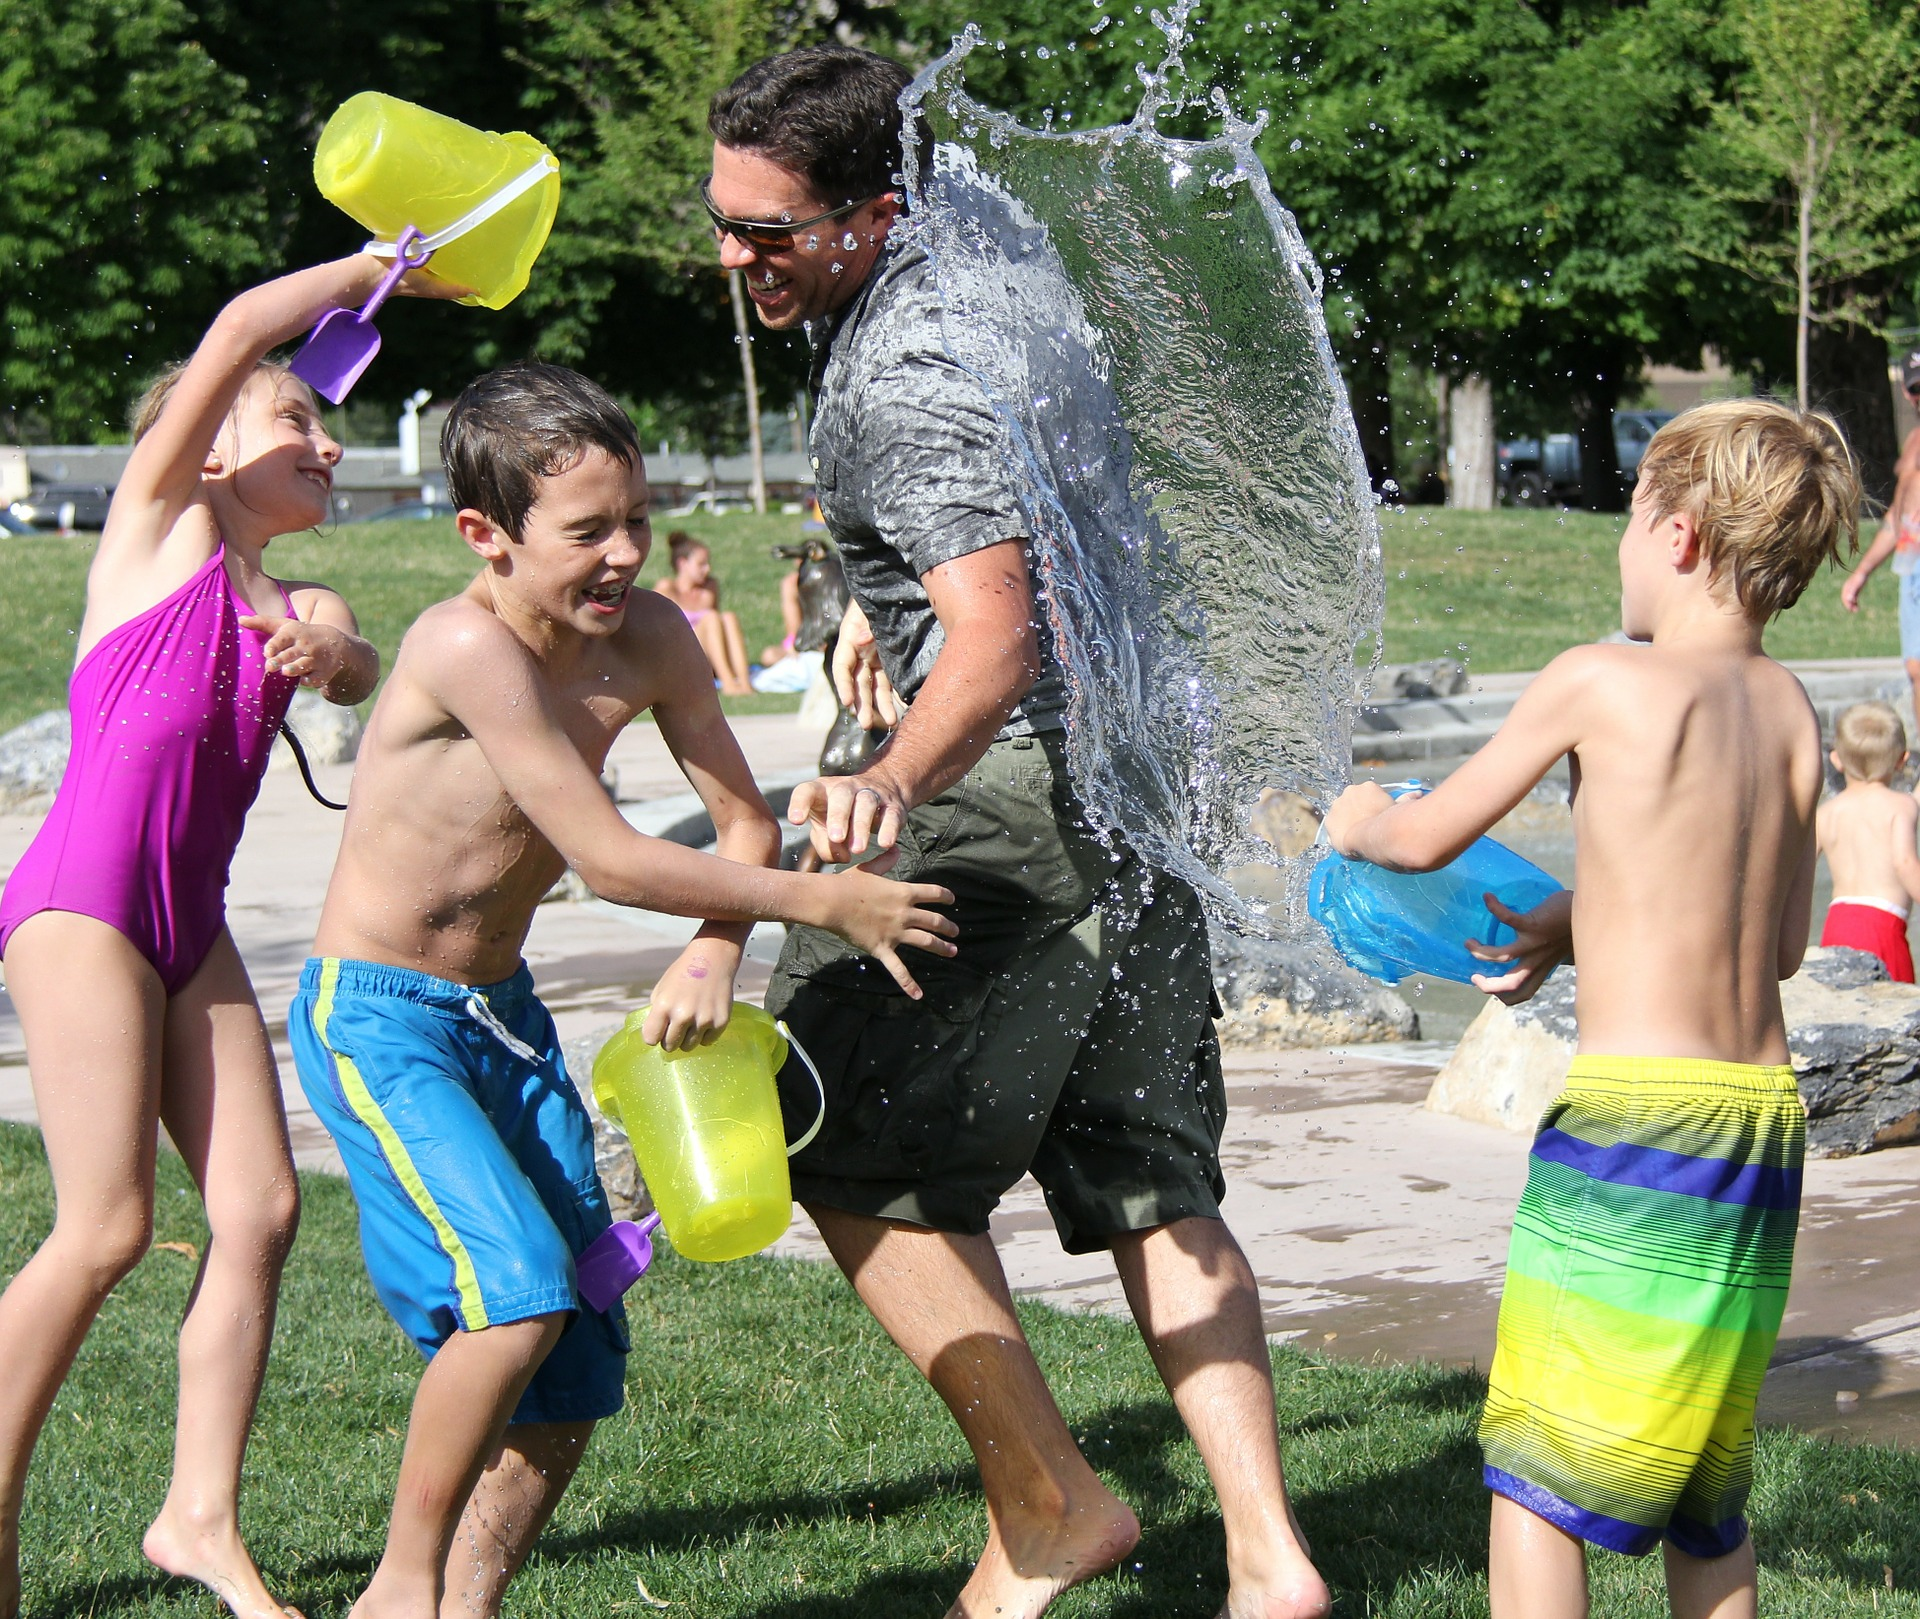 Water Fight at a Campground